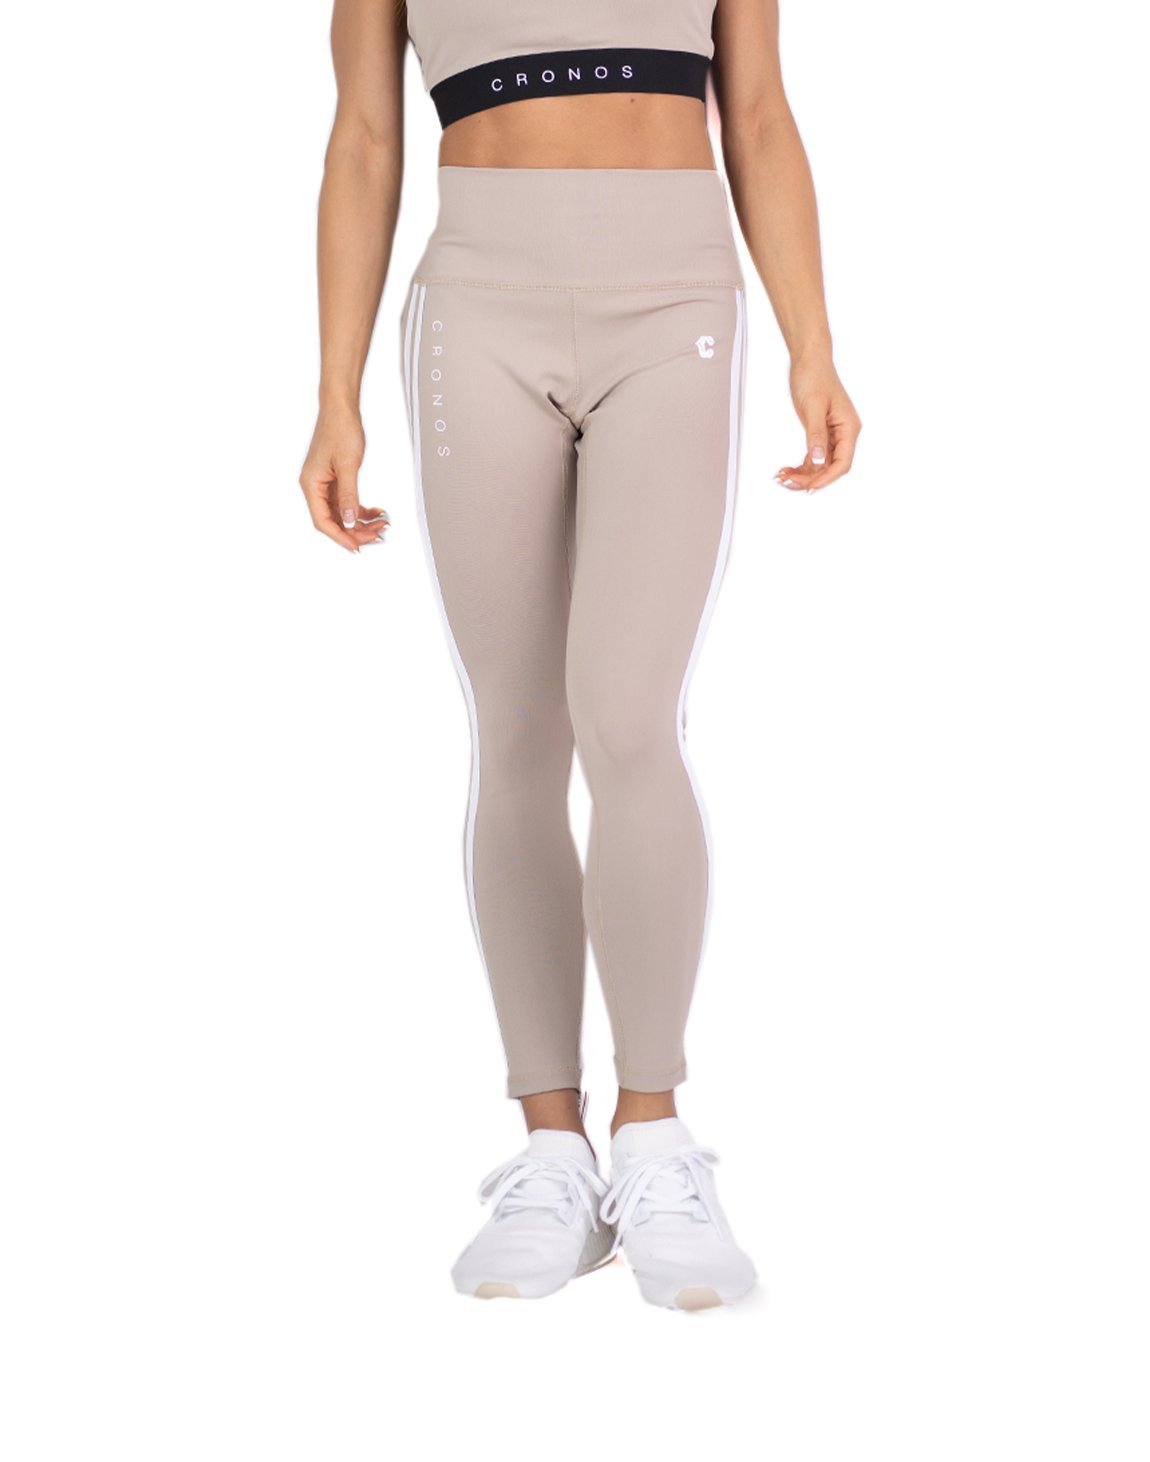 <img class='new_mark_img1' src='https://img.shop-pro.jp/img/new/icons1.gif' style='border:none;display:inline;margin:0px;padding:0px;width:auto;' />CRONOS MODE 2STRIPE LEGGINS  BEIGE